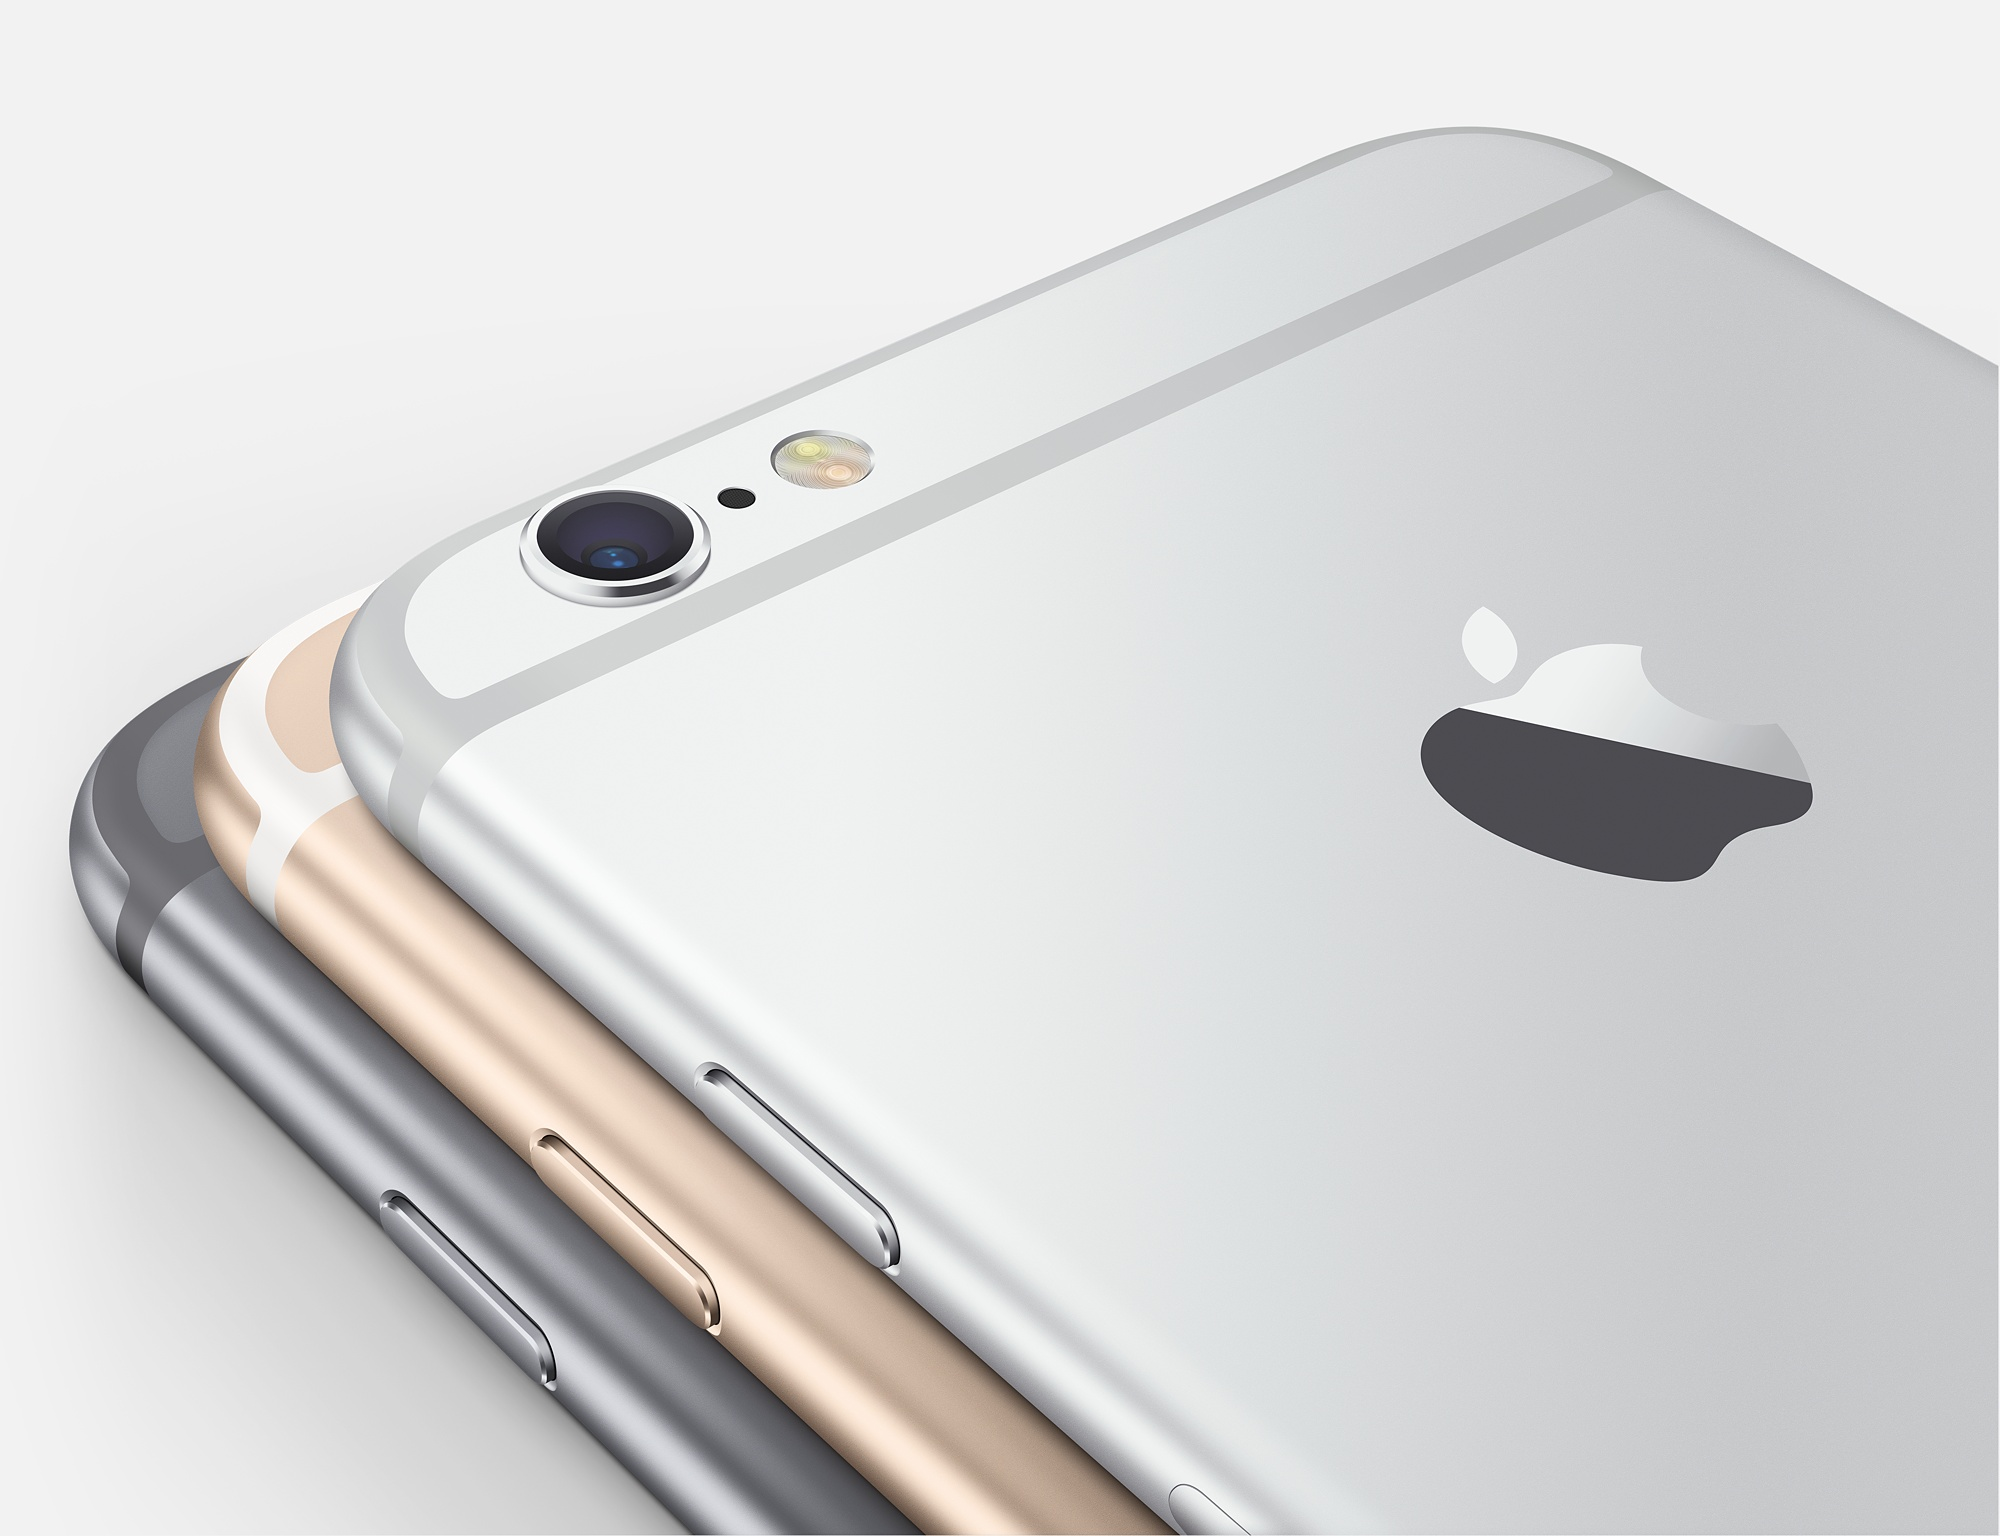 How can I get the best iPhone trade-in value from Gazelle?